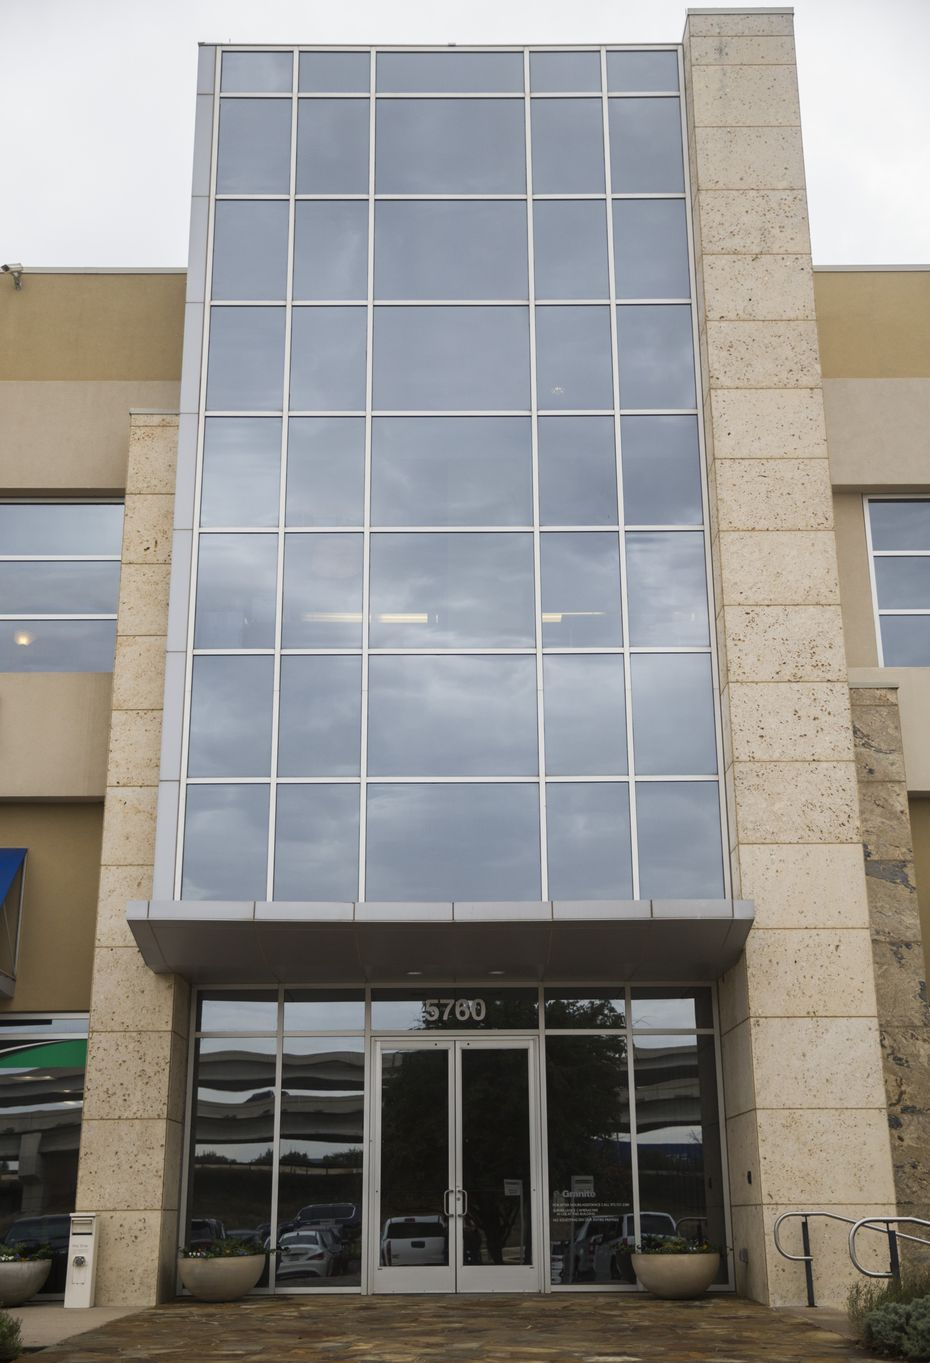 Vilhauer Enterprises headquarters, which is on the second floor of this building near the intersection of State Hwy 121 and the Dallas North Tollway, on Tuesday, November 26, 2019 in Plano. ICE is investigating the company for fraud for continuing to employ undocumented immigrants even after being caught and fined for it in 2015. (Ashley Landis/The Dallas Morning News)